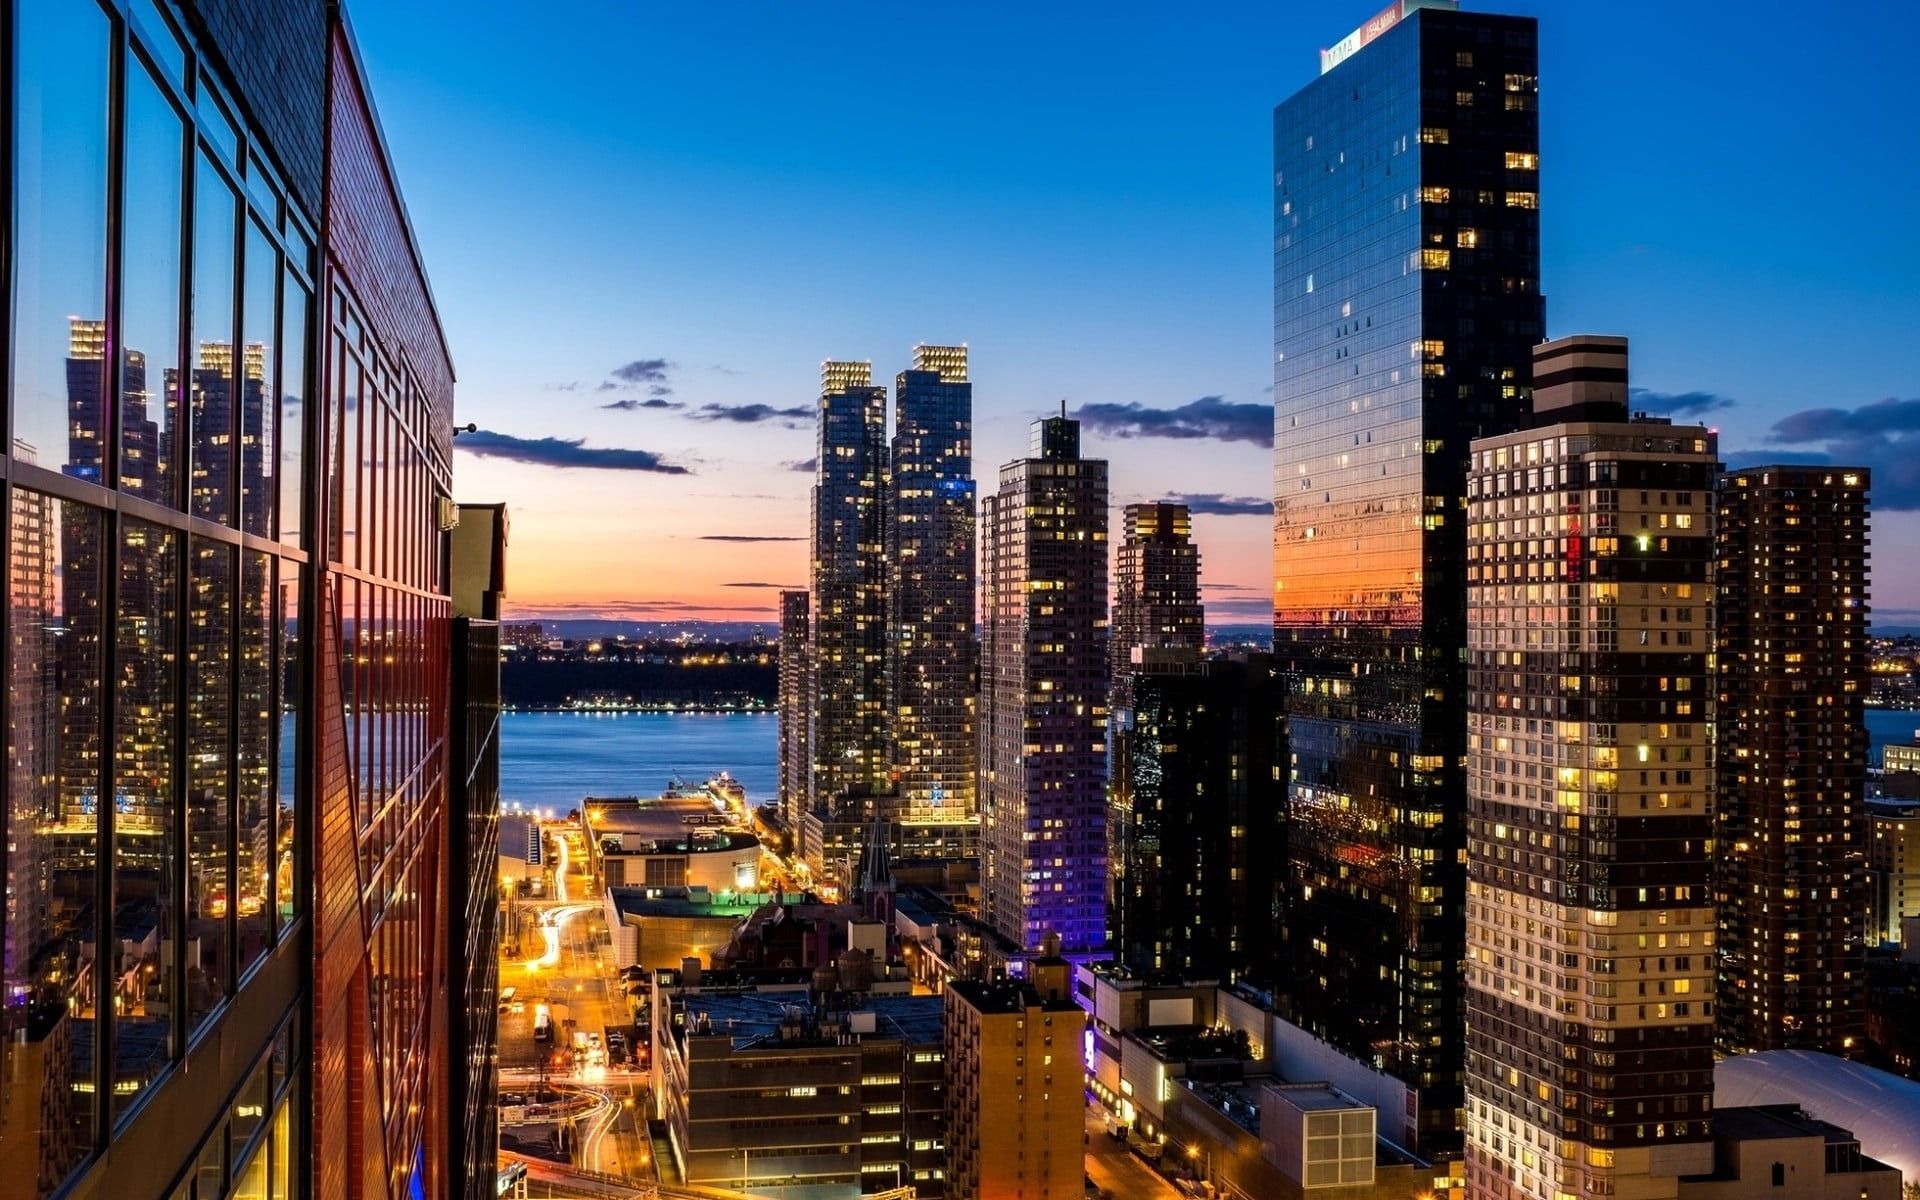 City Buildings Aerial Photography Of City During Nighttime Cityscape Architecture Building New York Manhattan Wallpaper Cityscape Wallpaper City Wallpaper